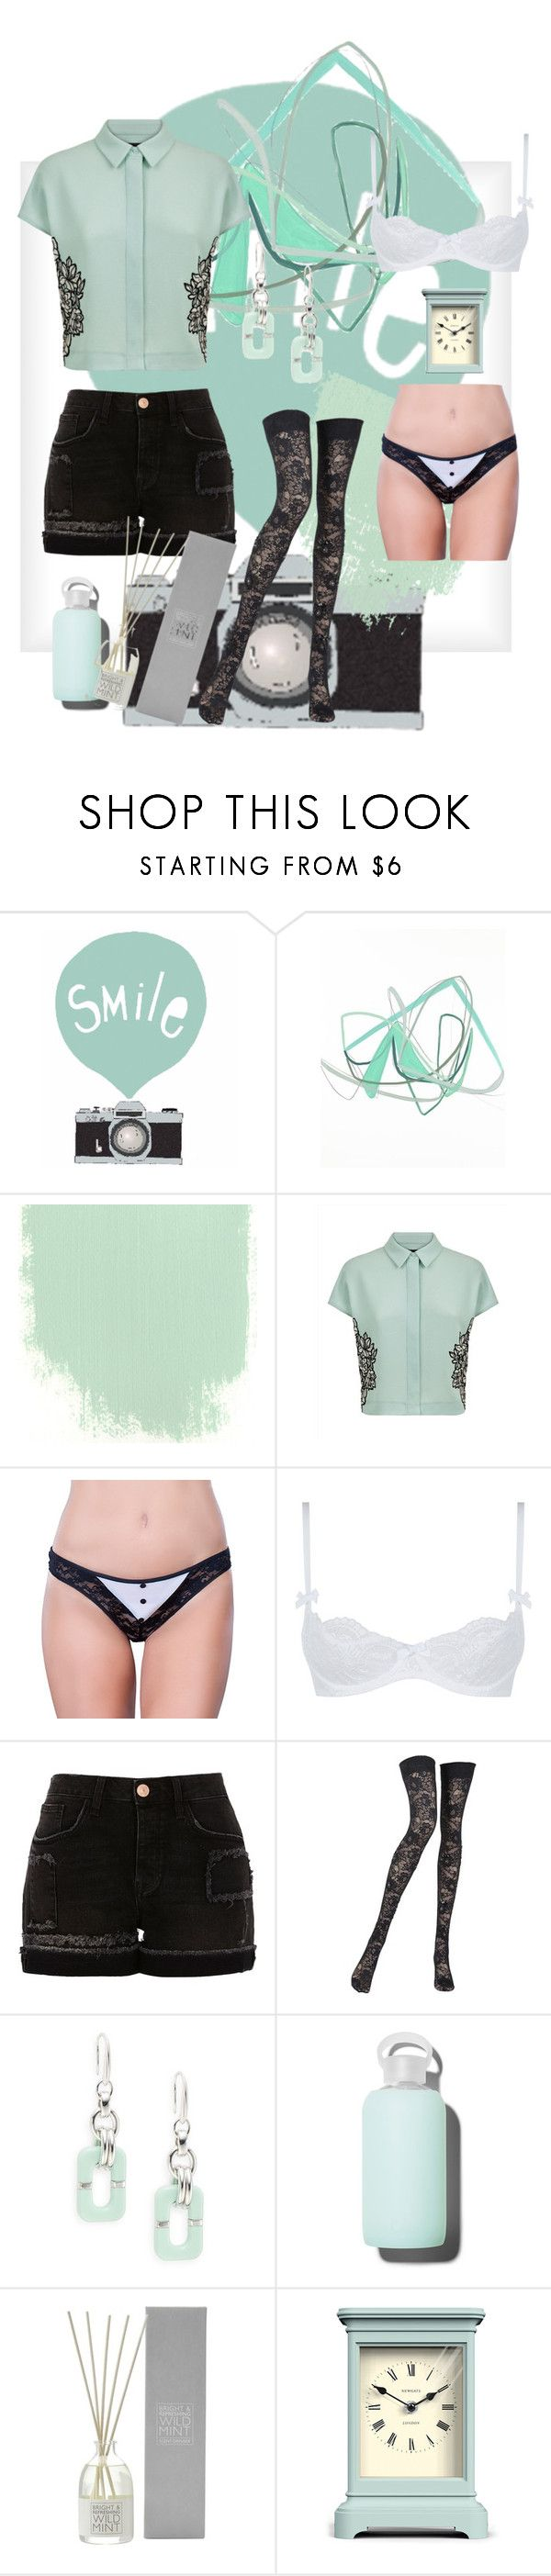 """Minty"" by nvrthewriter ❤ liked on Polyvore featuring Seventy Tree, Jaeger, Oh La La Cheri, L'Agent By Agent Provocateur, River Island, Pierre Mantoux, Diane Von Furstenberg, bkr, The White Company and Newgate"